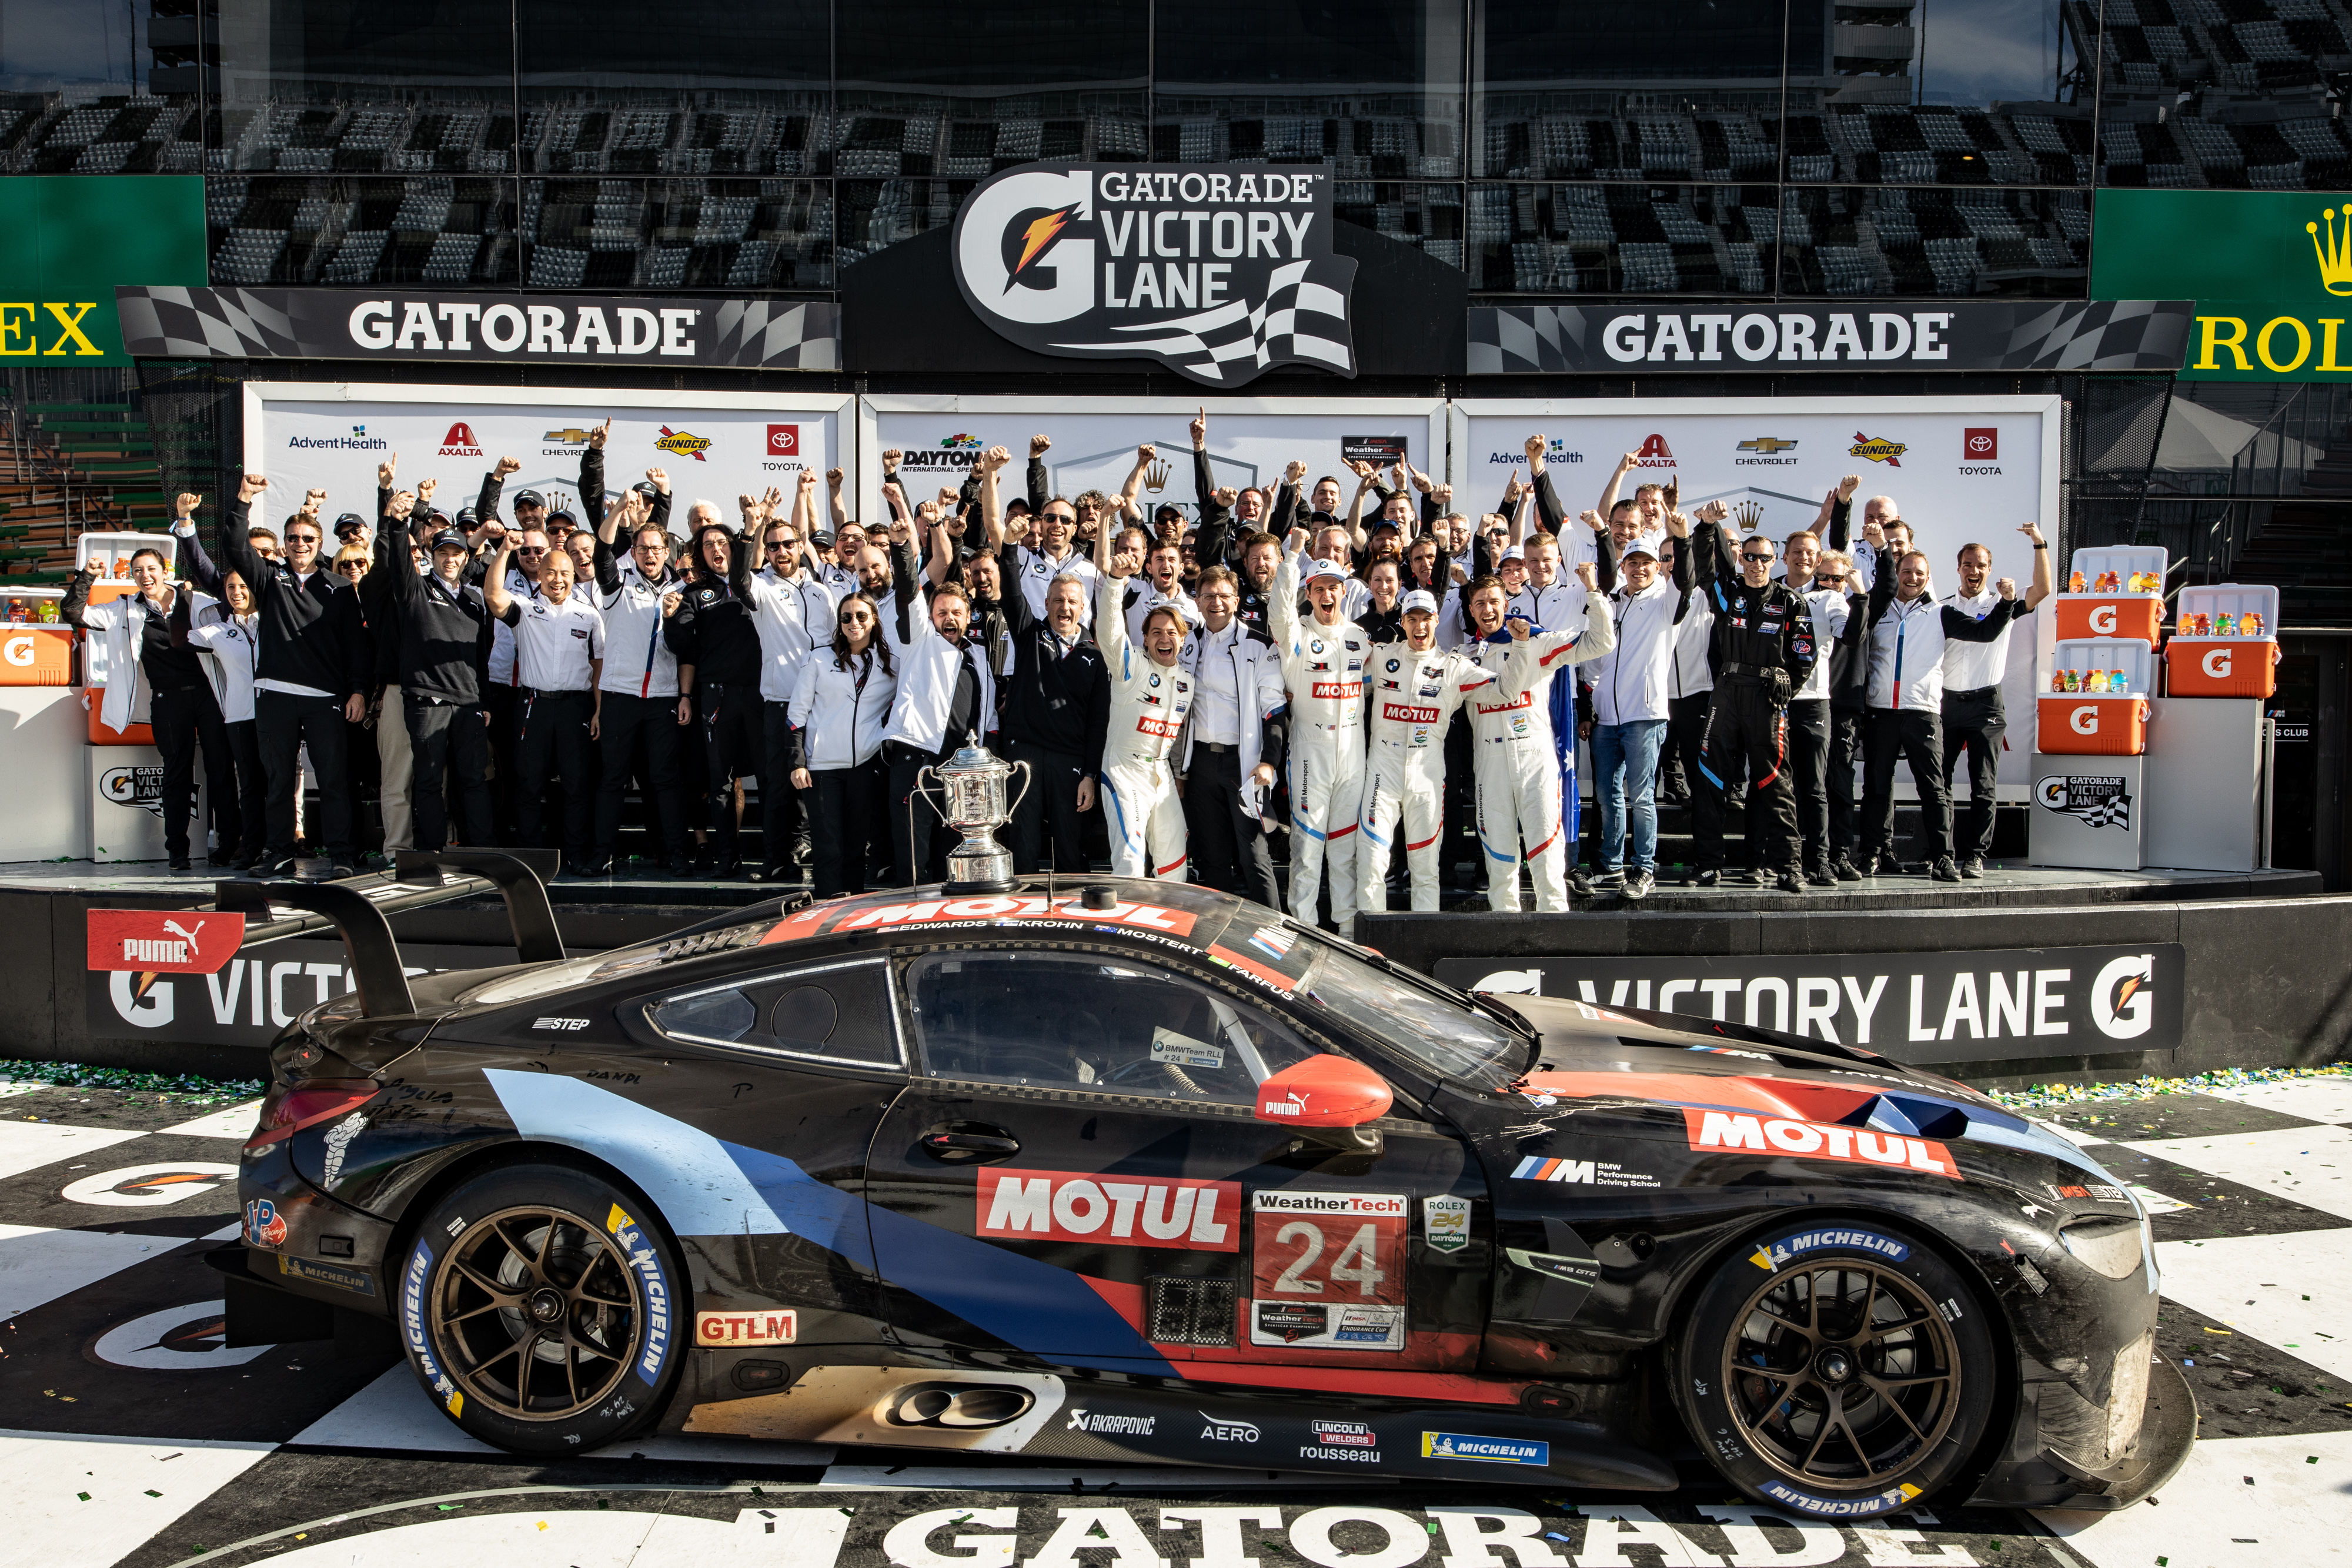 Bmw Team Rll Wins Daytona Thriller Second Gtlm Consecutive Triumph For The Bmw M8 Gte At The Imsa Season Opener Rahal Letterman Lanigan